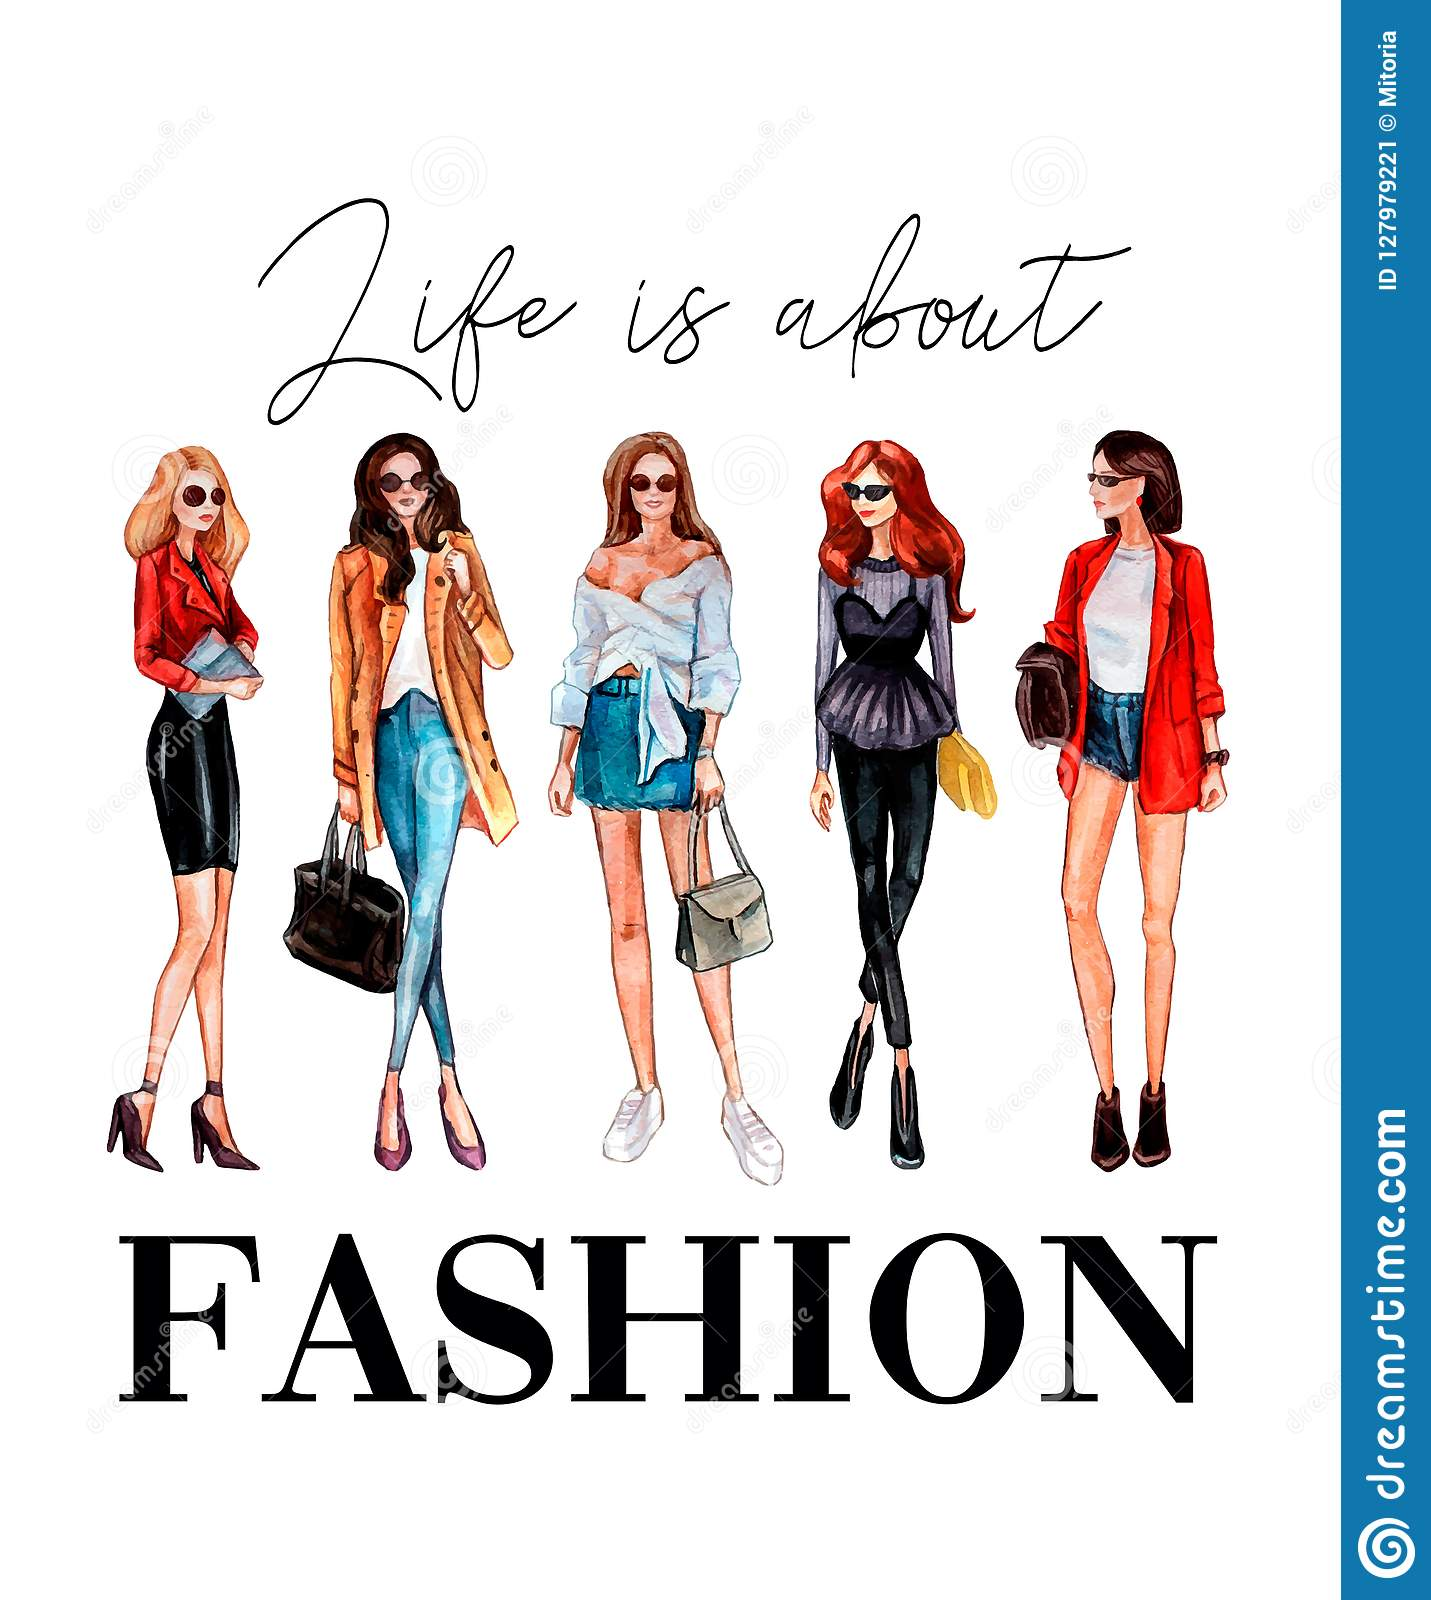 Life is about fashion t-shirt design with stylish girls and lettering.